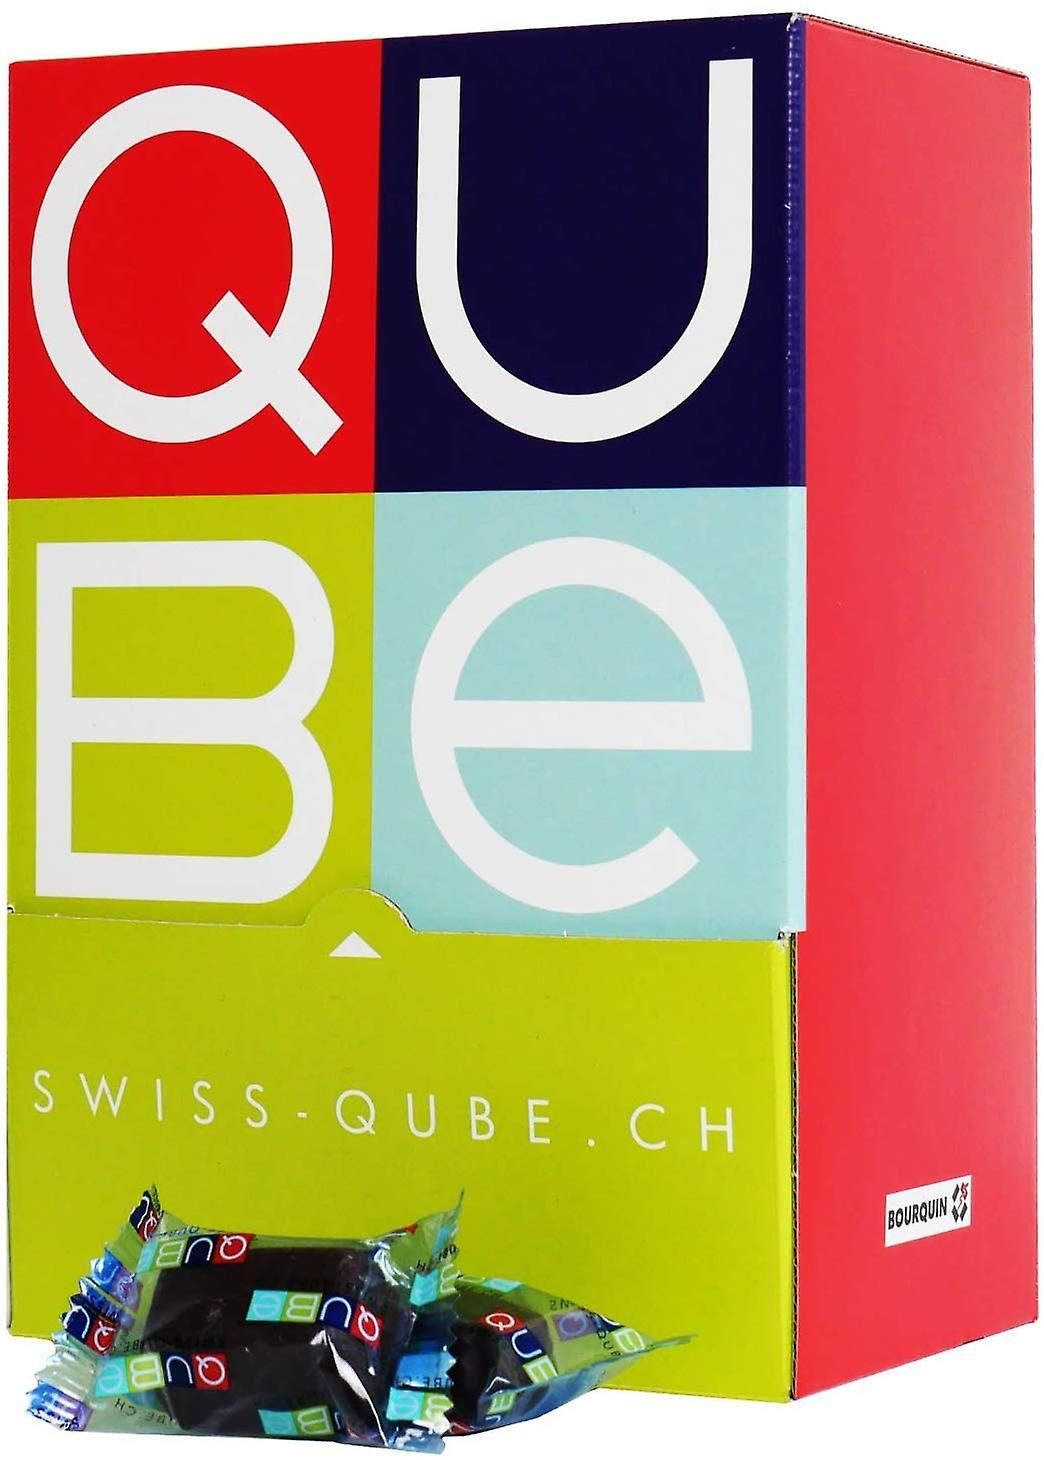 Swiss-QUBE Diet Bar - Weight Control | Lose weight without starvation on a natural basis | Taste Yagi | 56 Swiss-Qubes - Weekly Ration